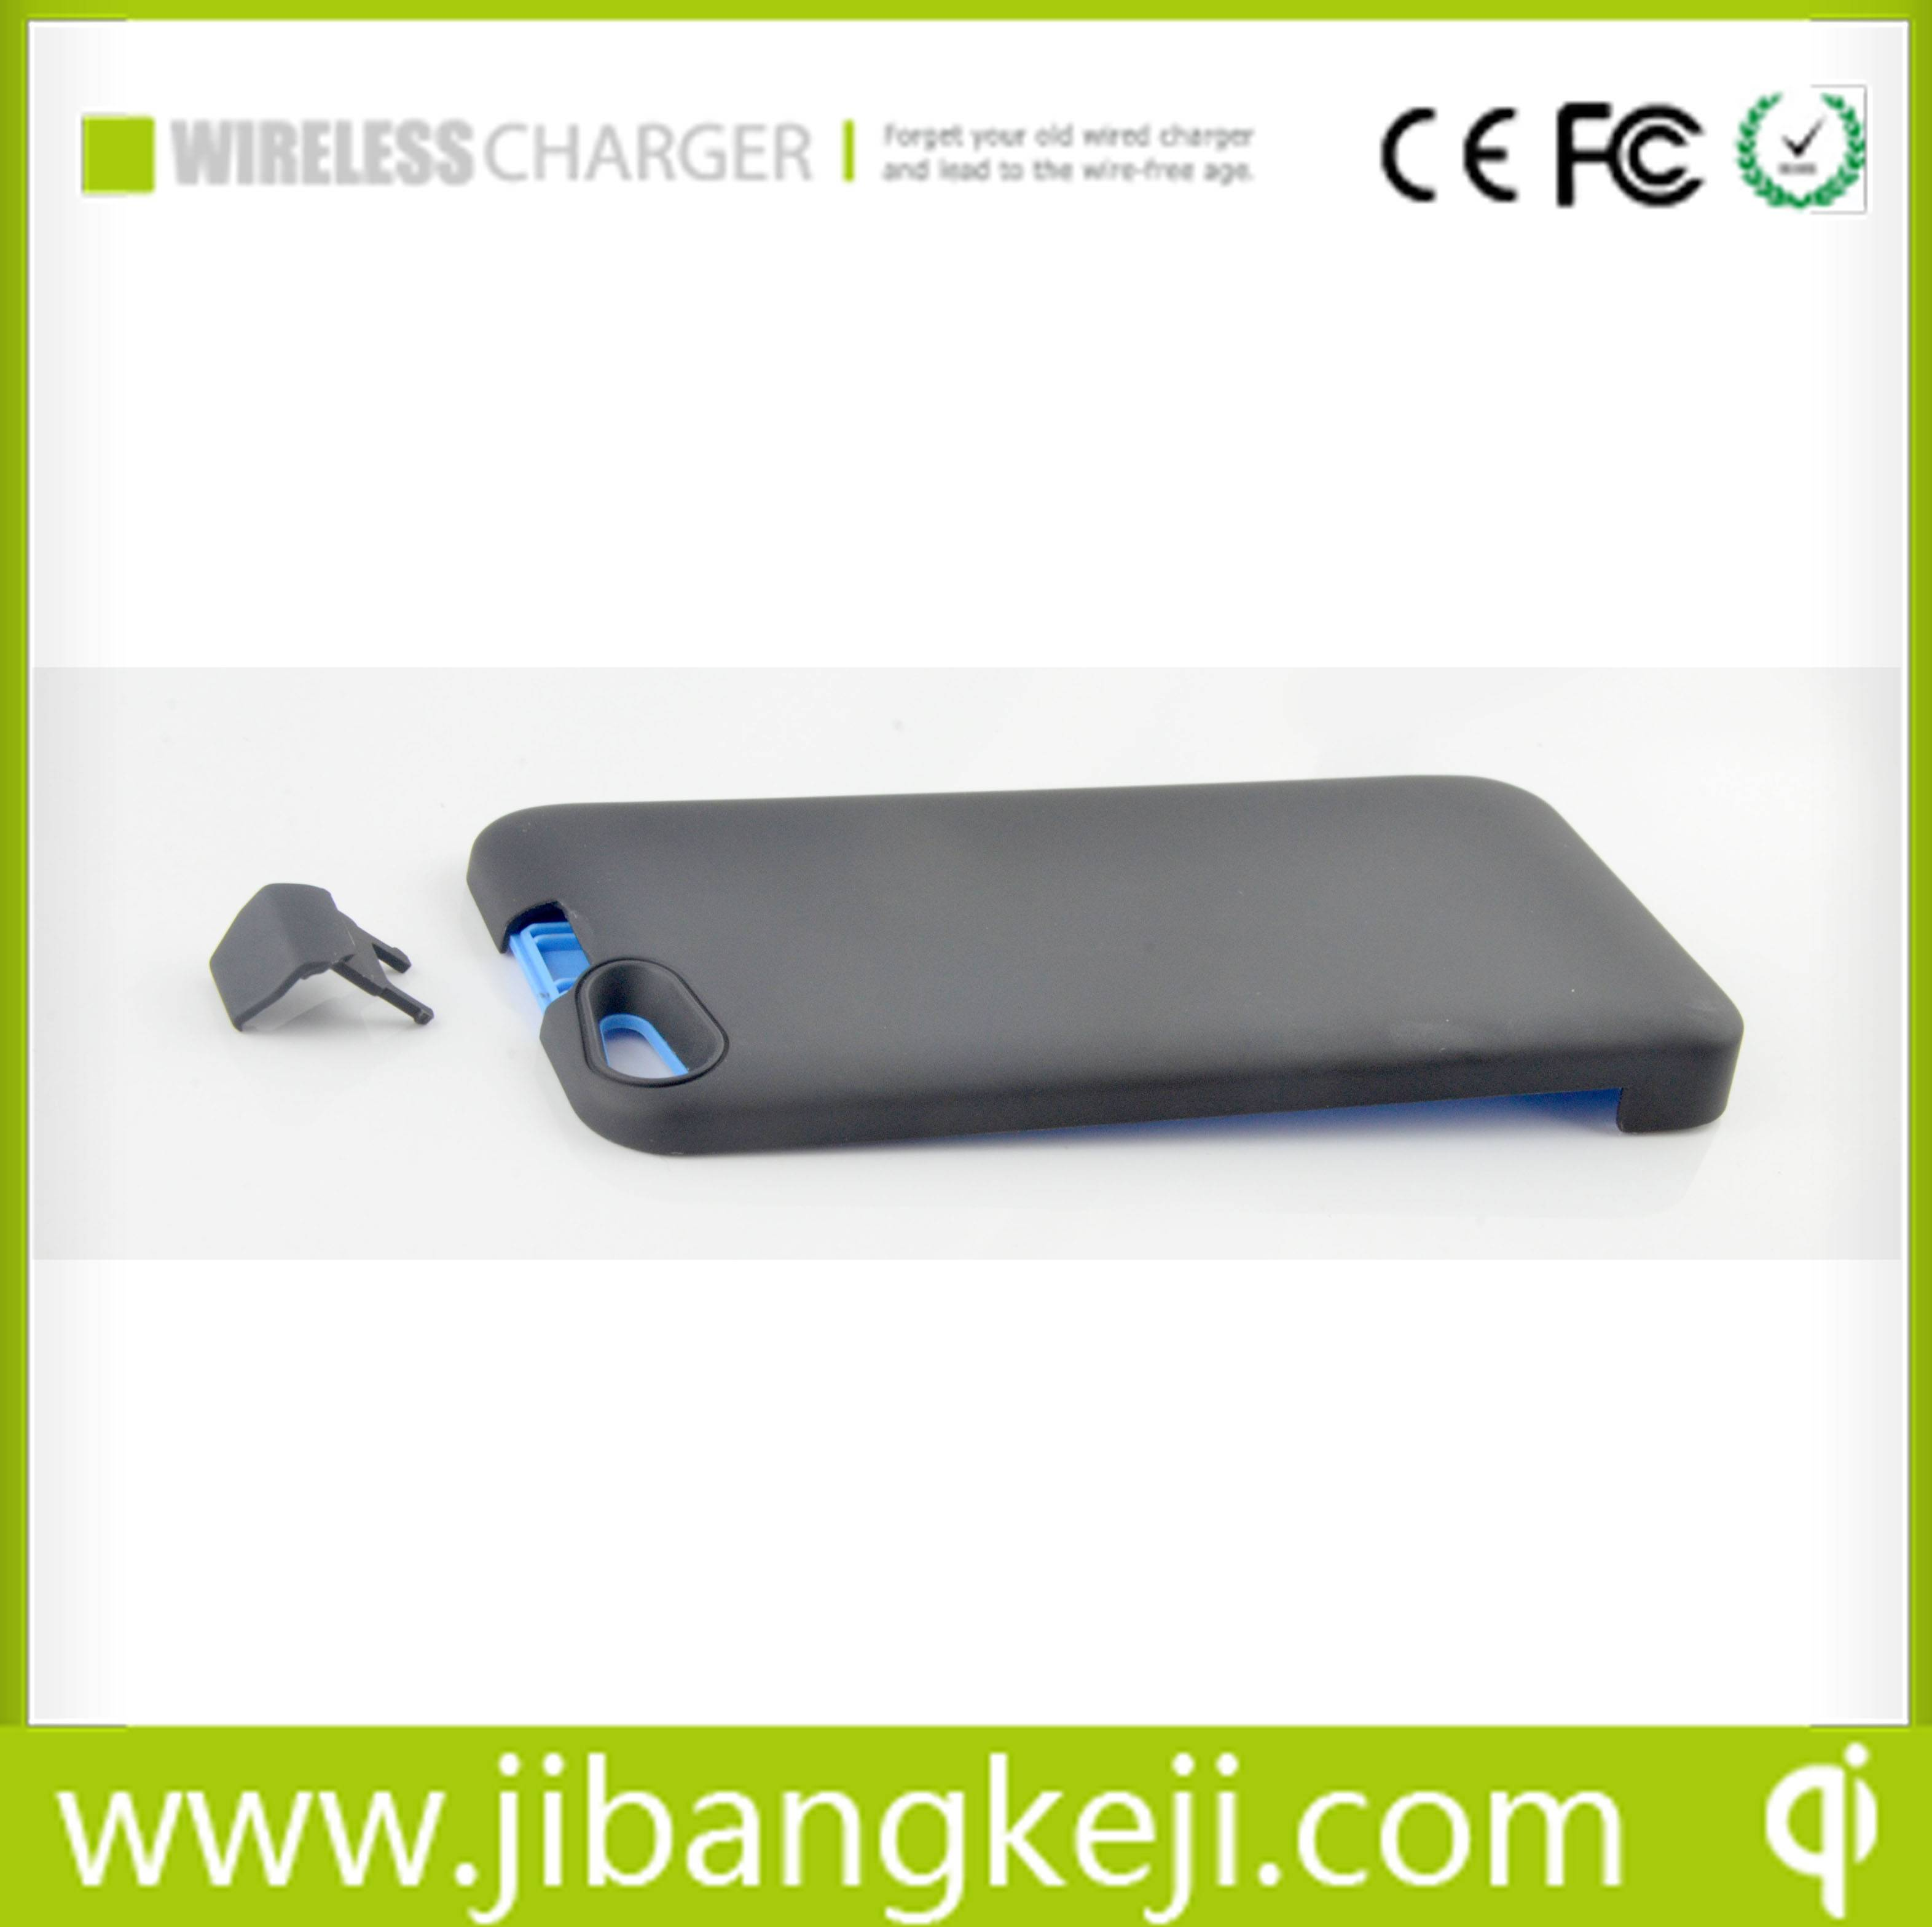 RC-I5P   Power Bank&Wireless charger Receiver for iPhone5 (QI standard )with 2200mah extral battery